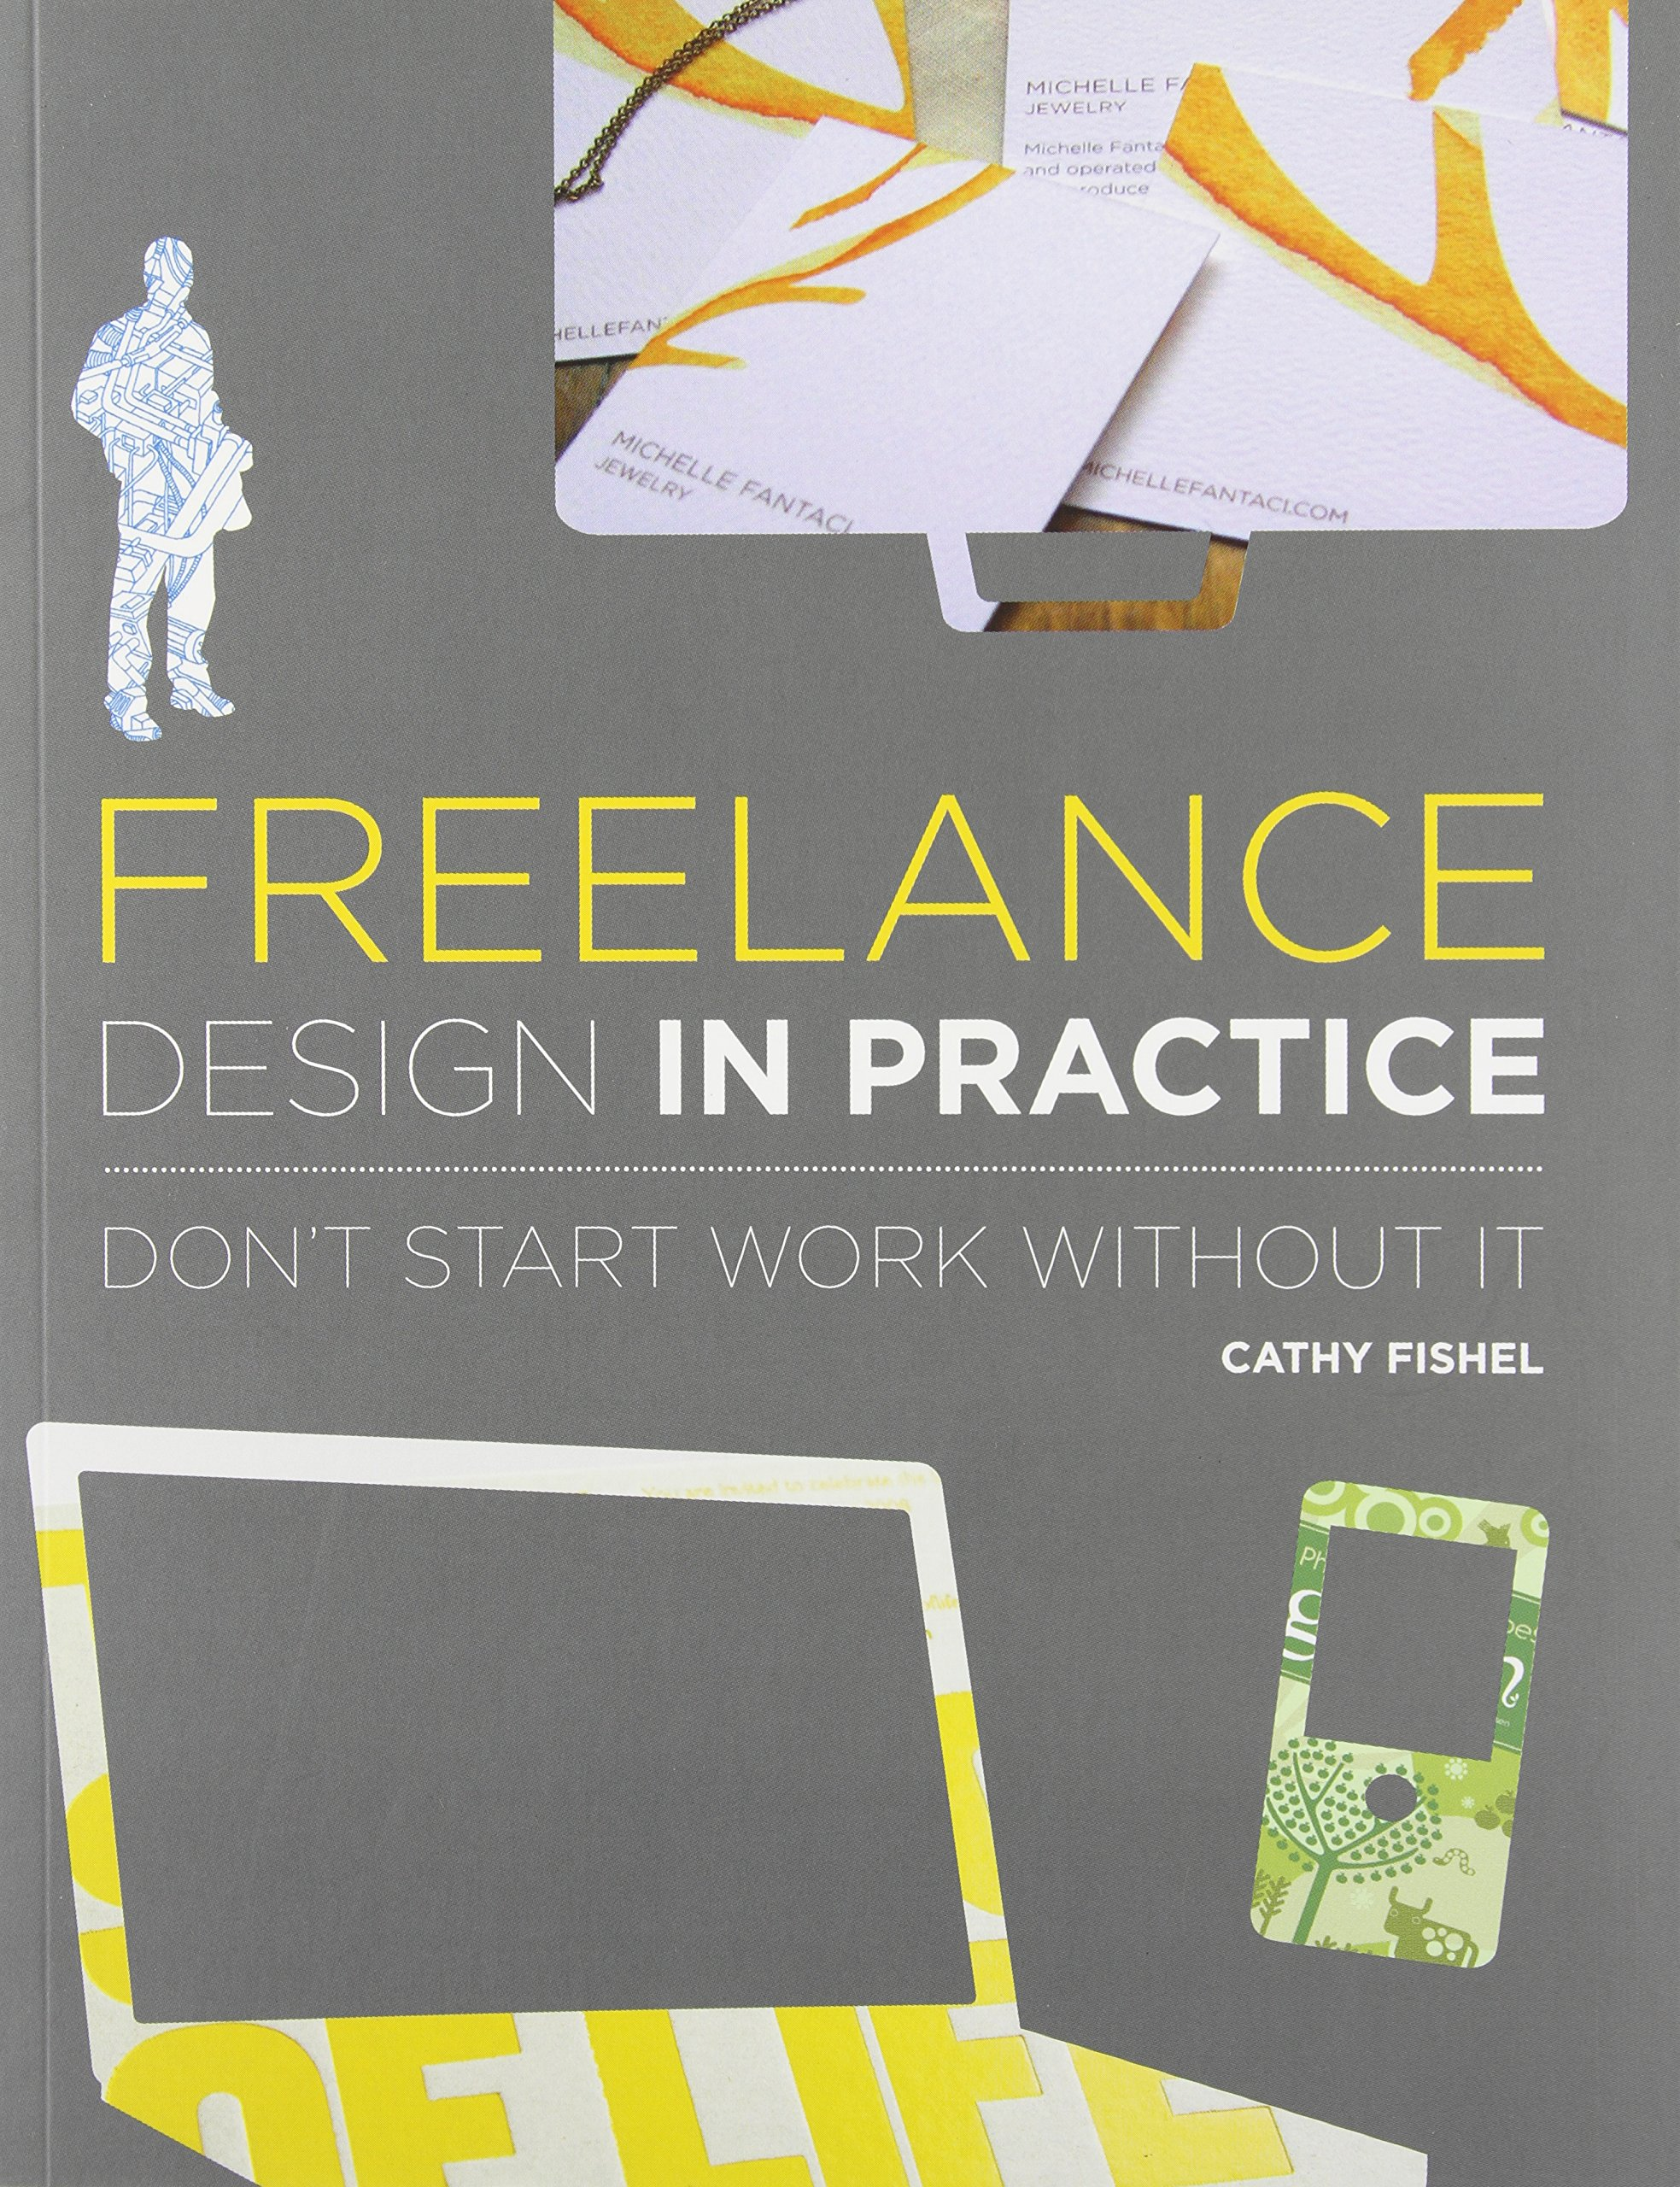 Poster design freelance - Freelance Design In Practice Cathy Fishel 9781600613029 Amazon Com Books